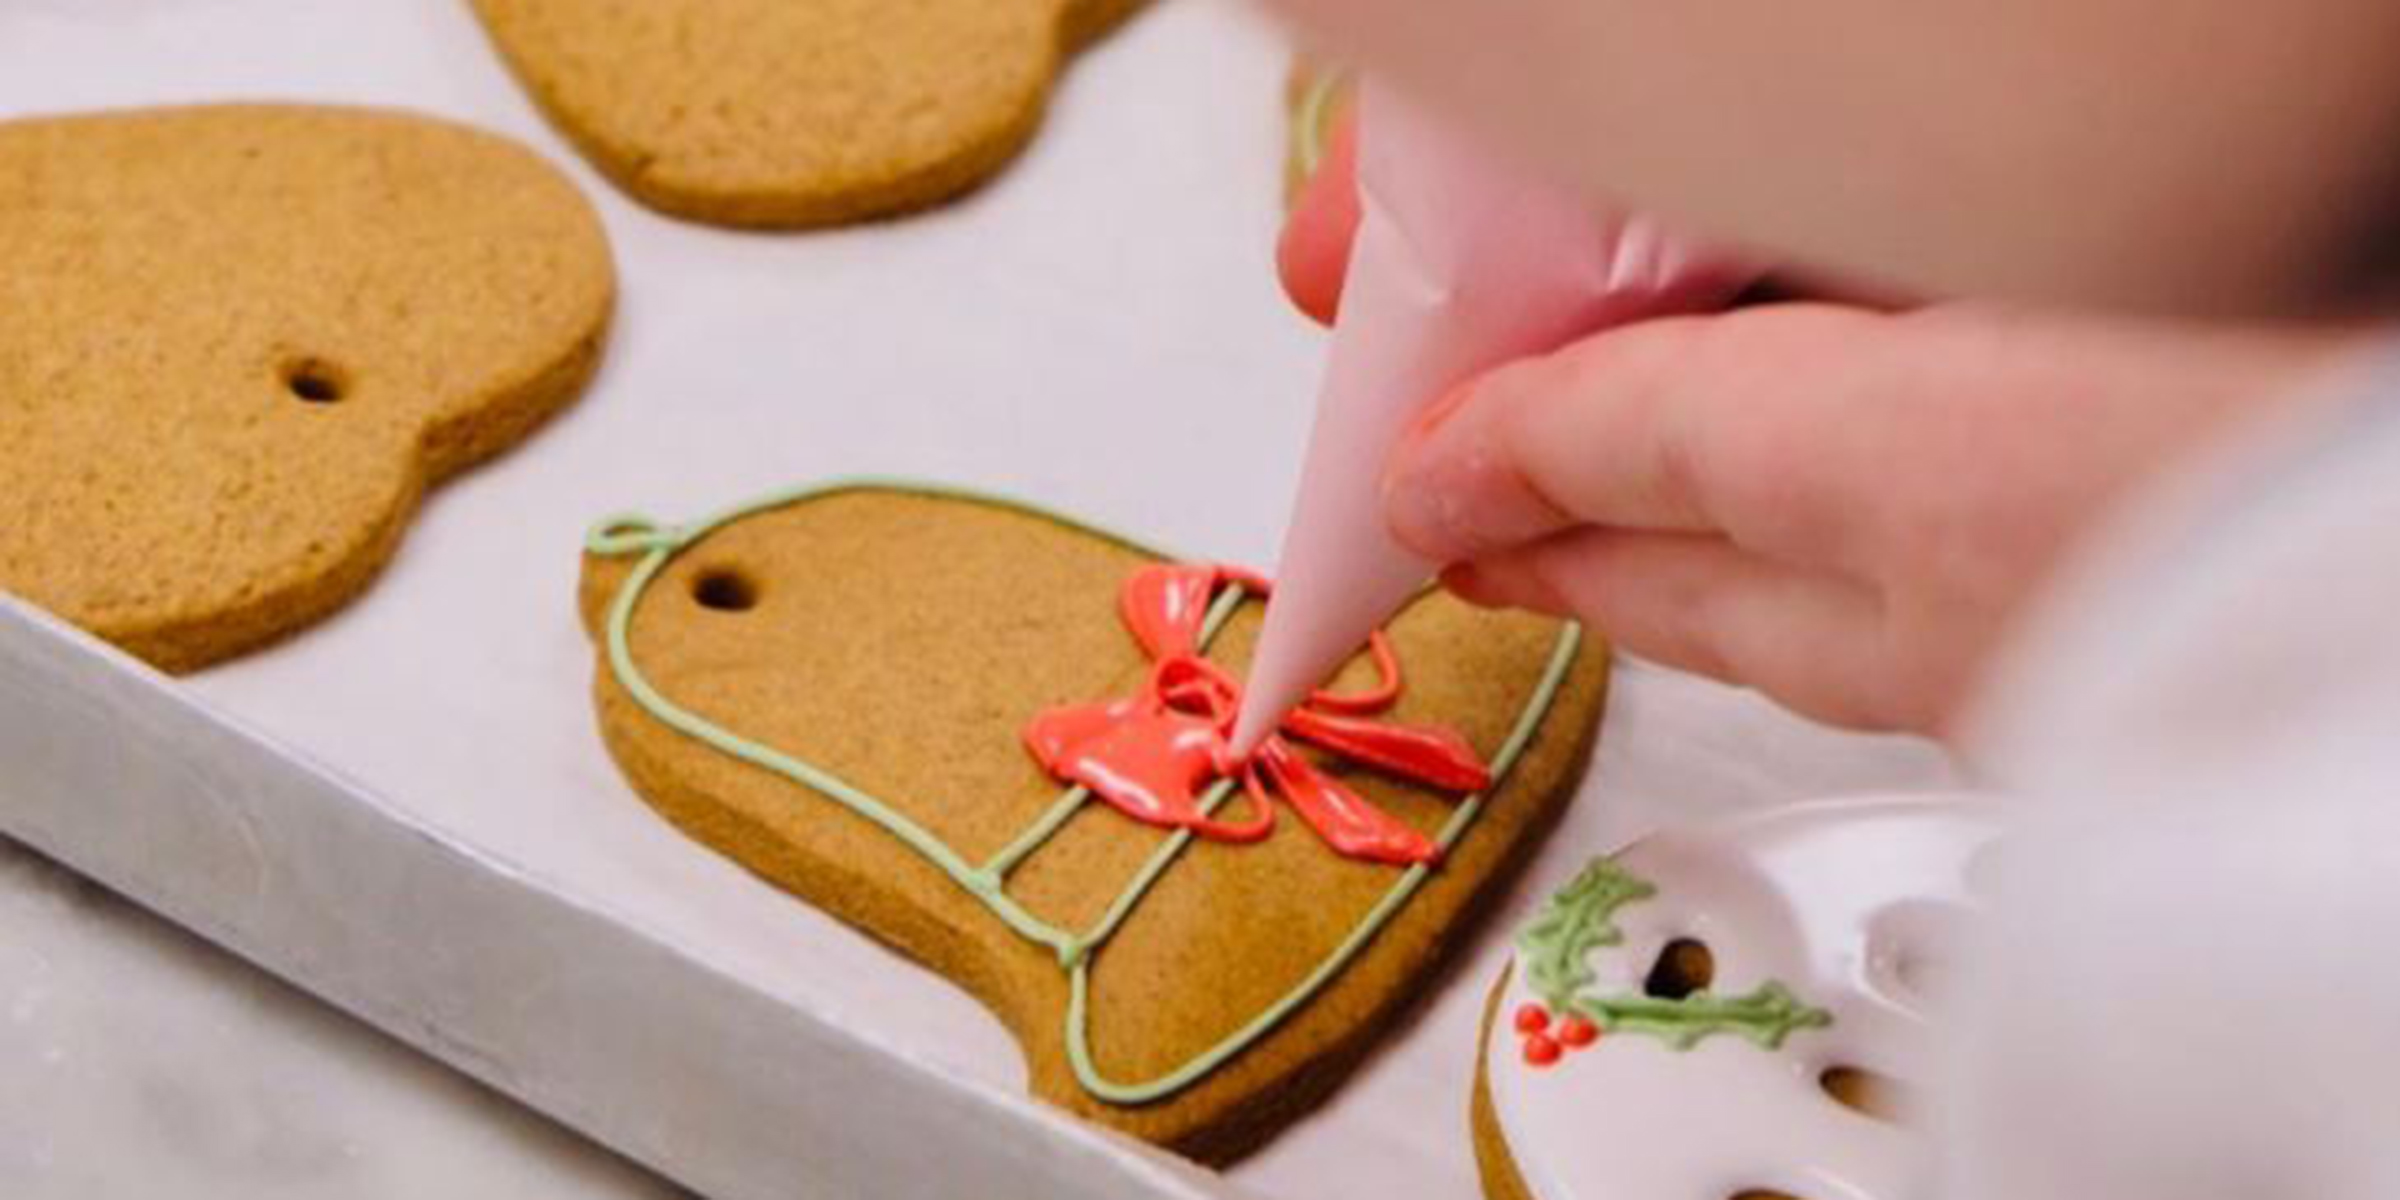 Royal Family Recipe For Gingerbread Cookies Served At Christmas To Queen